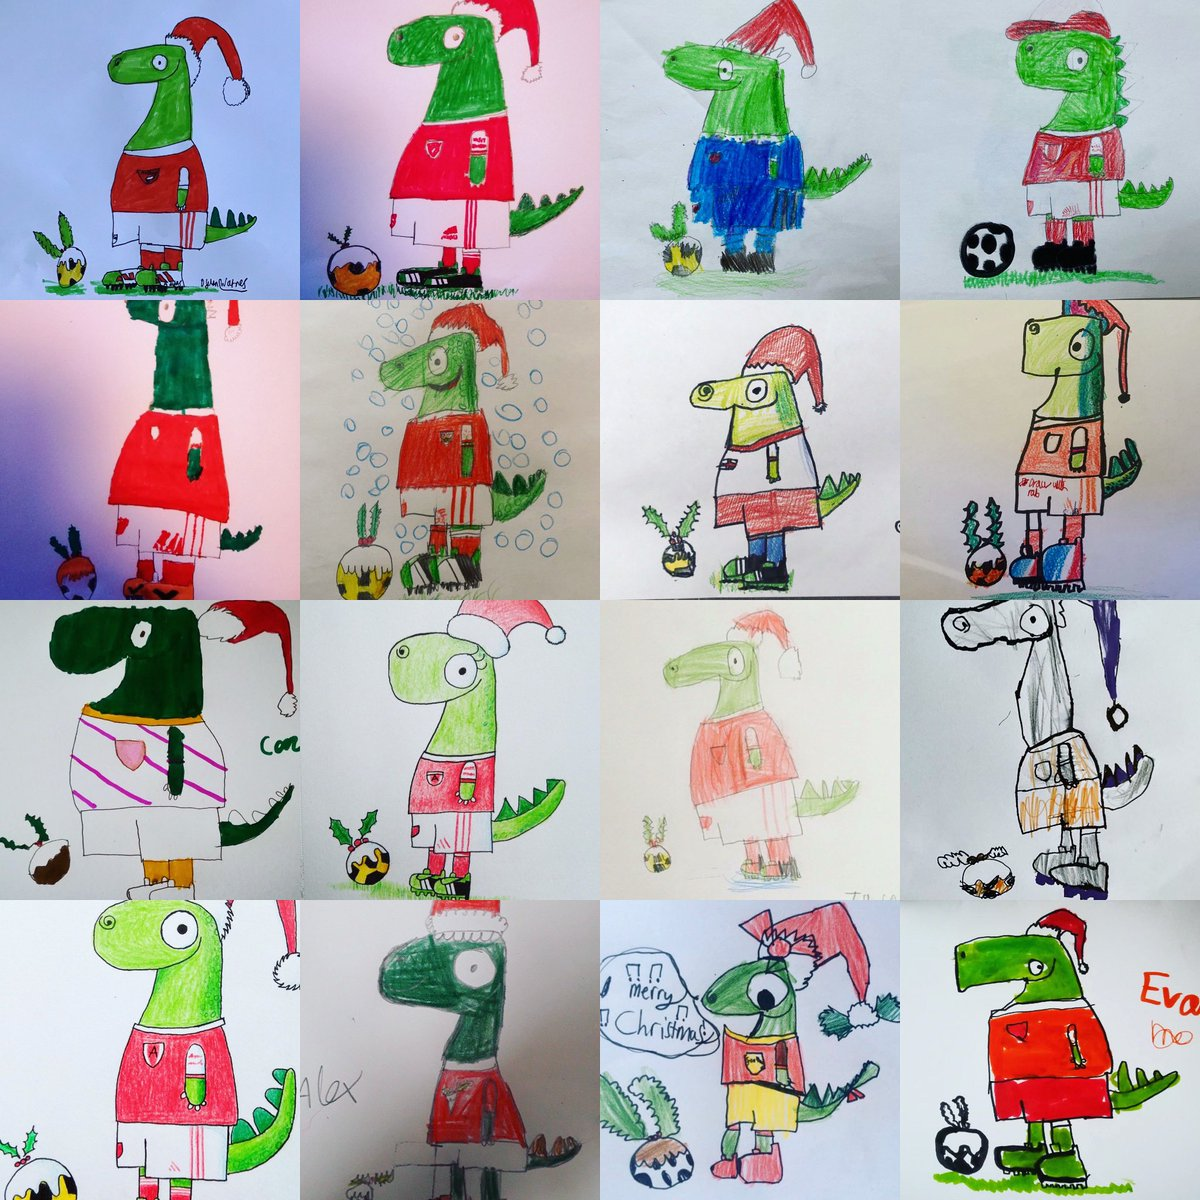 Here are a few Gunnersauruses from today's bonus episode of #DrawWithRob. The final festive episode (who could we POSSIBLY be drawing on Christmas Eve???) drops tomorrow at 10am... 🎄🎄🎄  @Arsenal @JuniorGunners